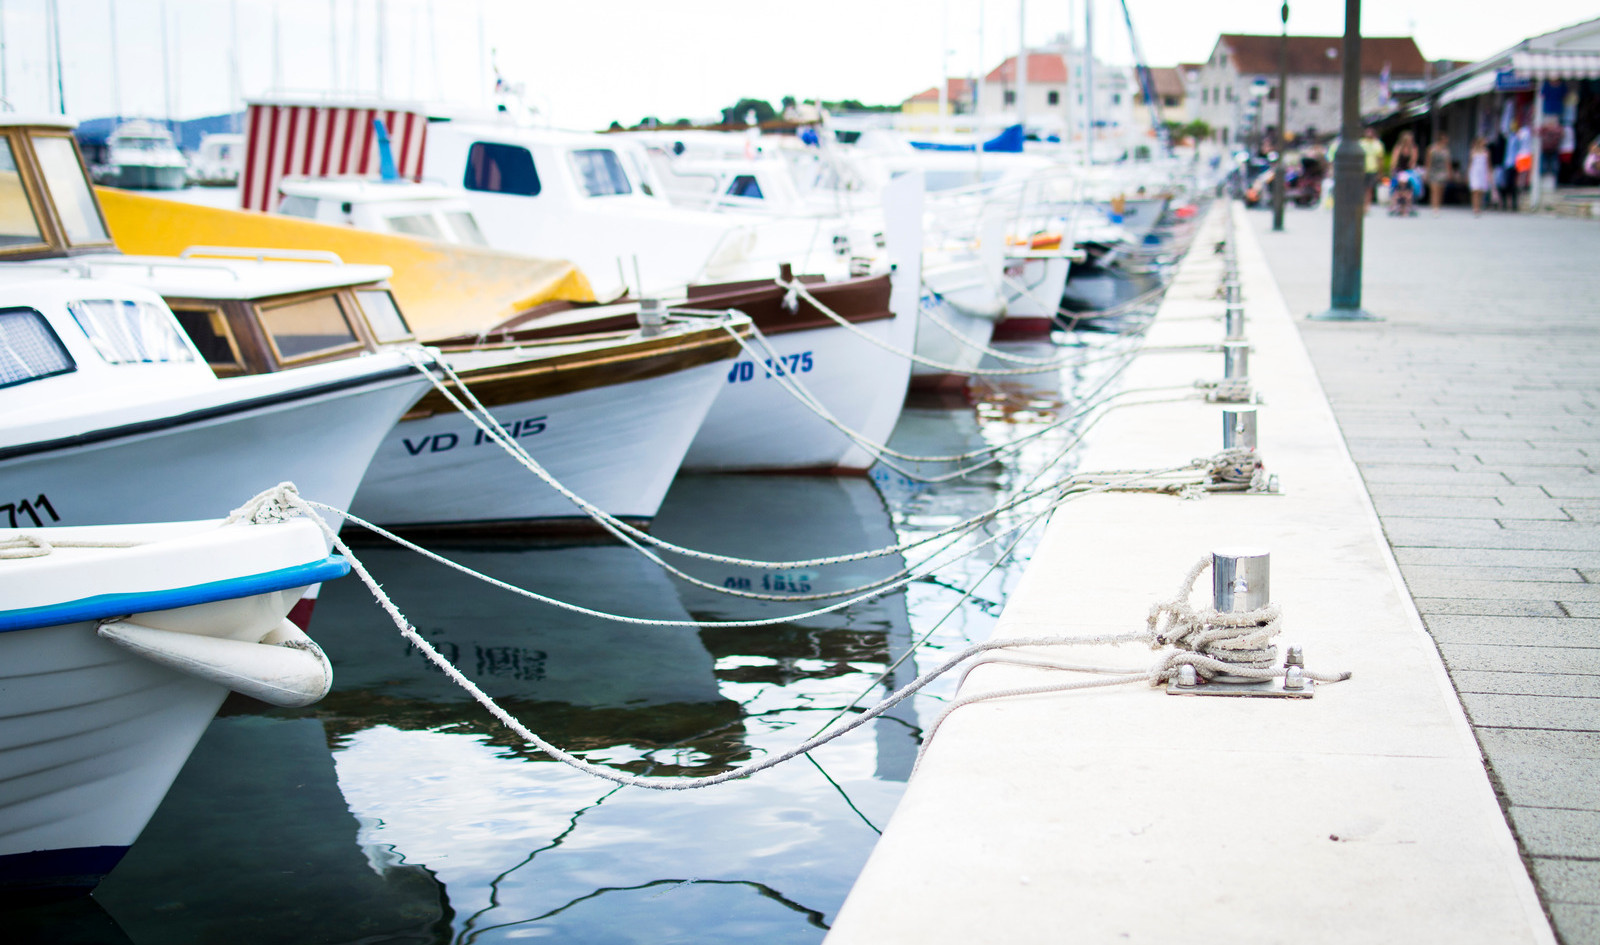 Canva - Sea Dock with Boats Waiting (1).